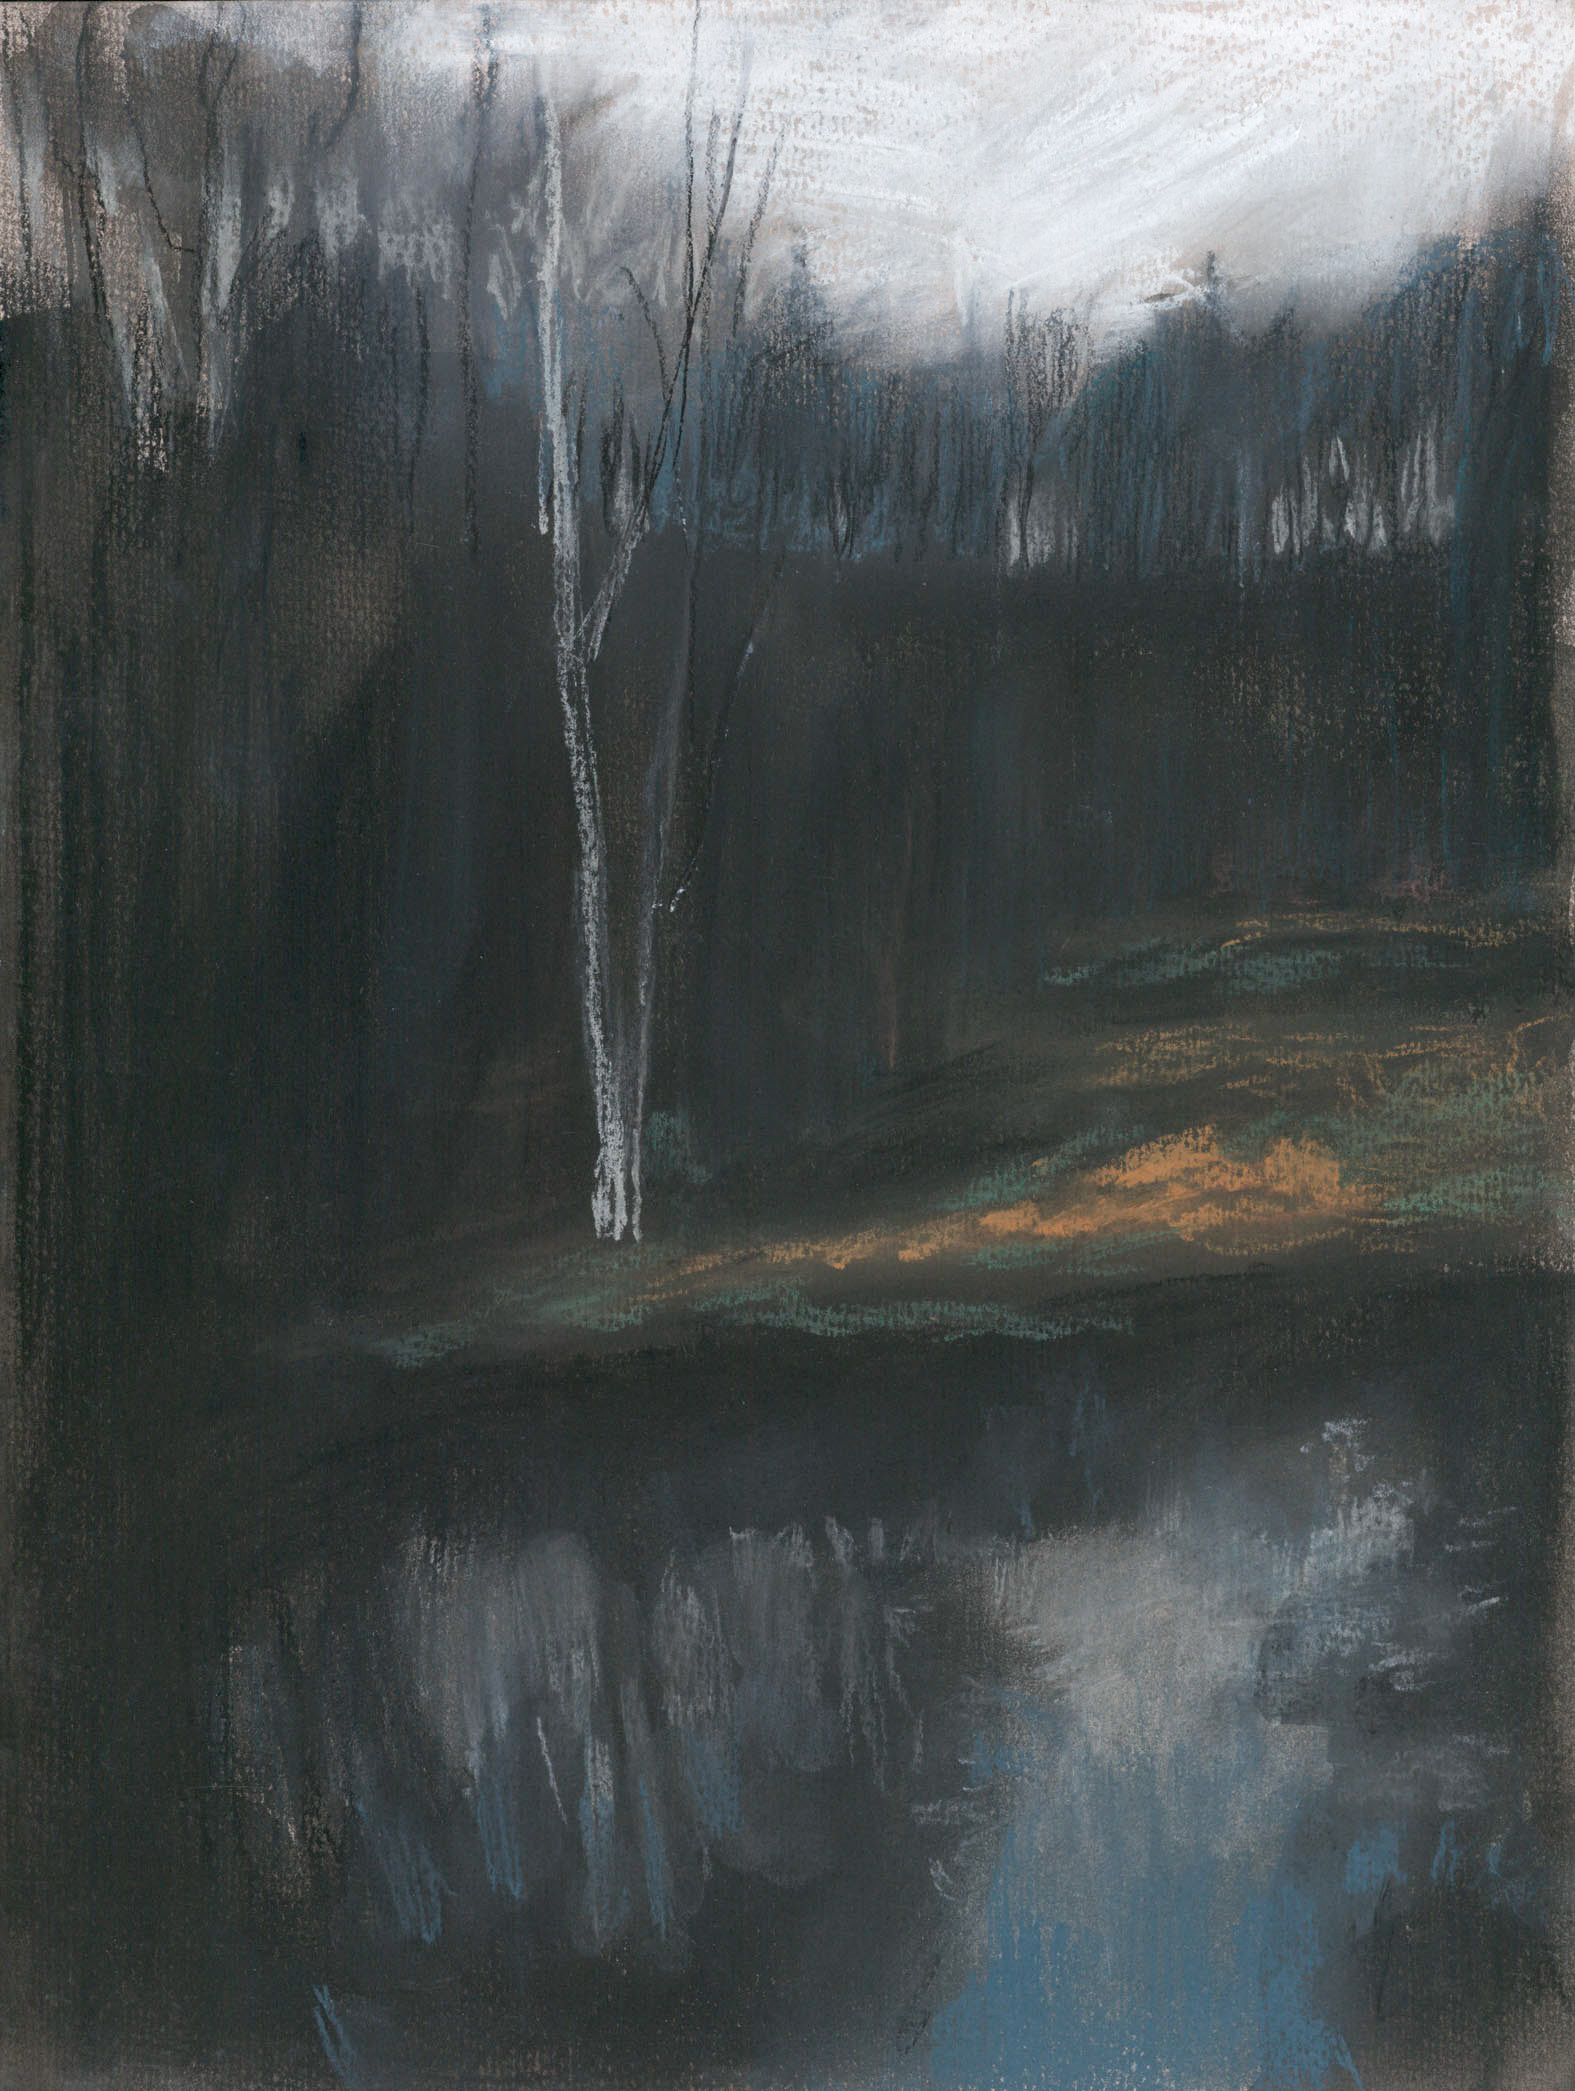 Winterscape 1-17. Ink, pastel, paper. 32x24cm. 2012